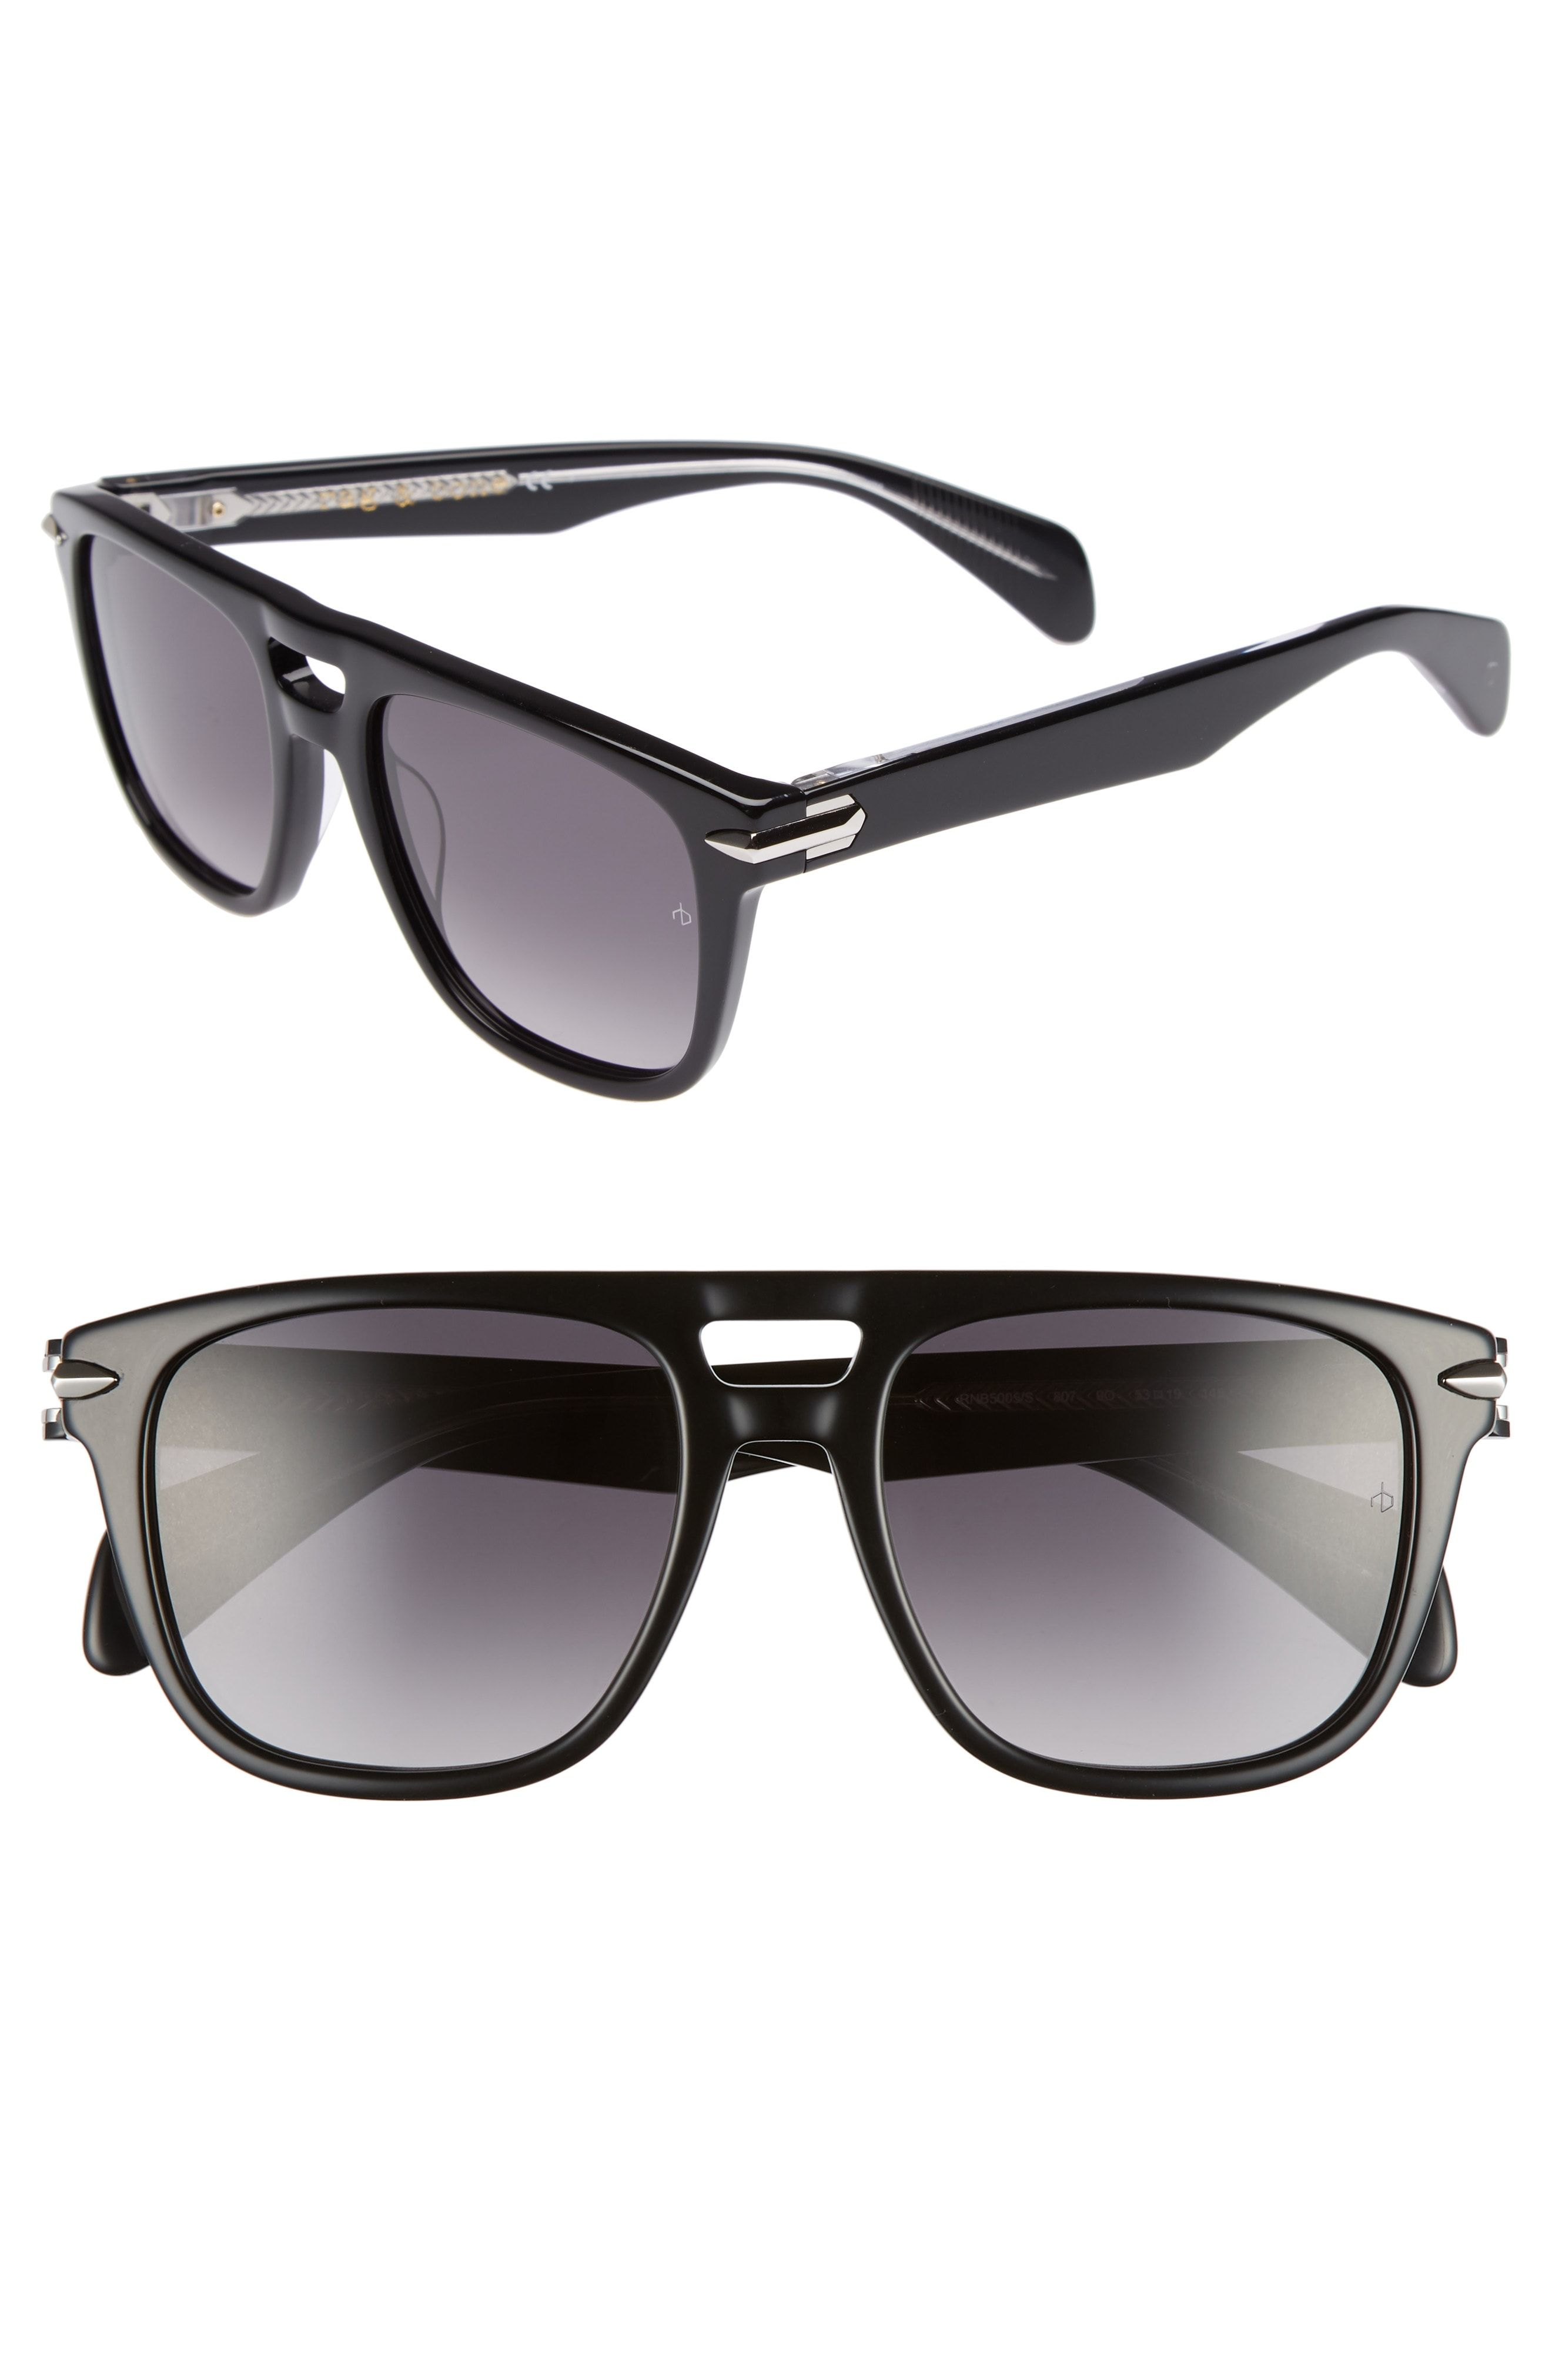 de9fbba806c The Best Sunglasses from the Nordstrom Anniversary Sale